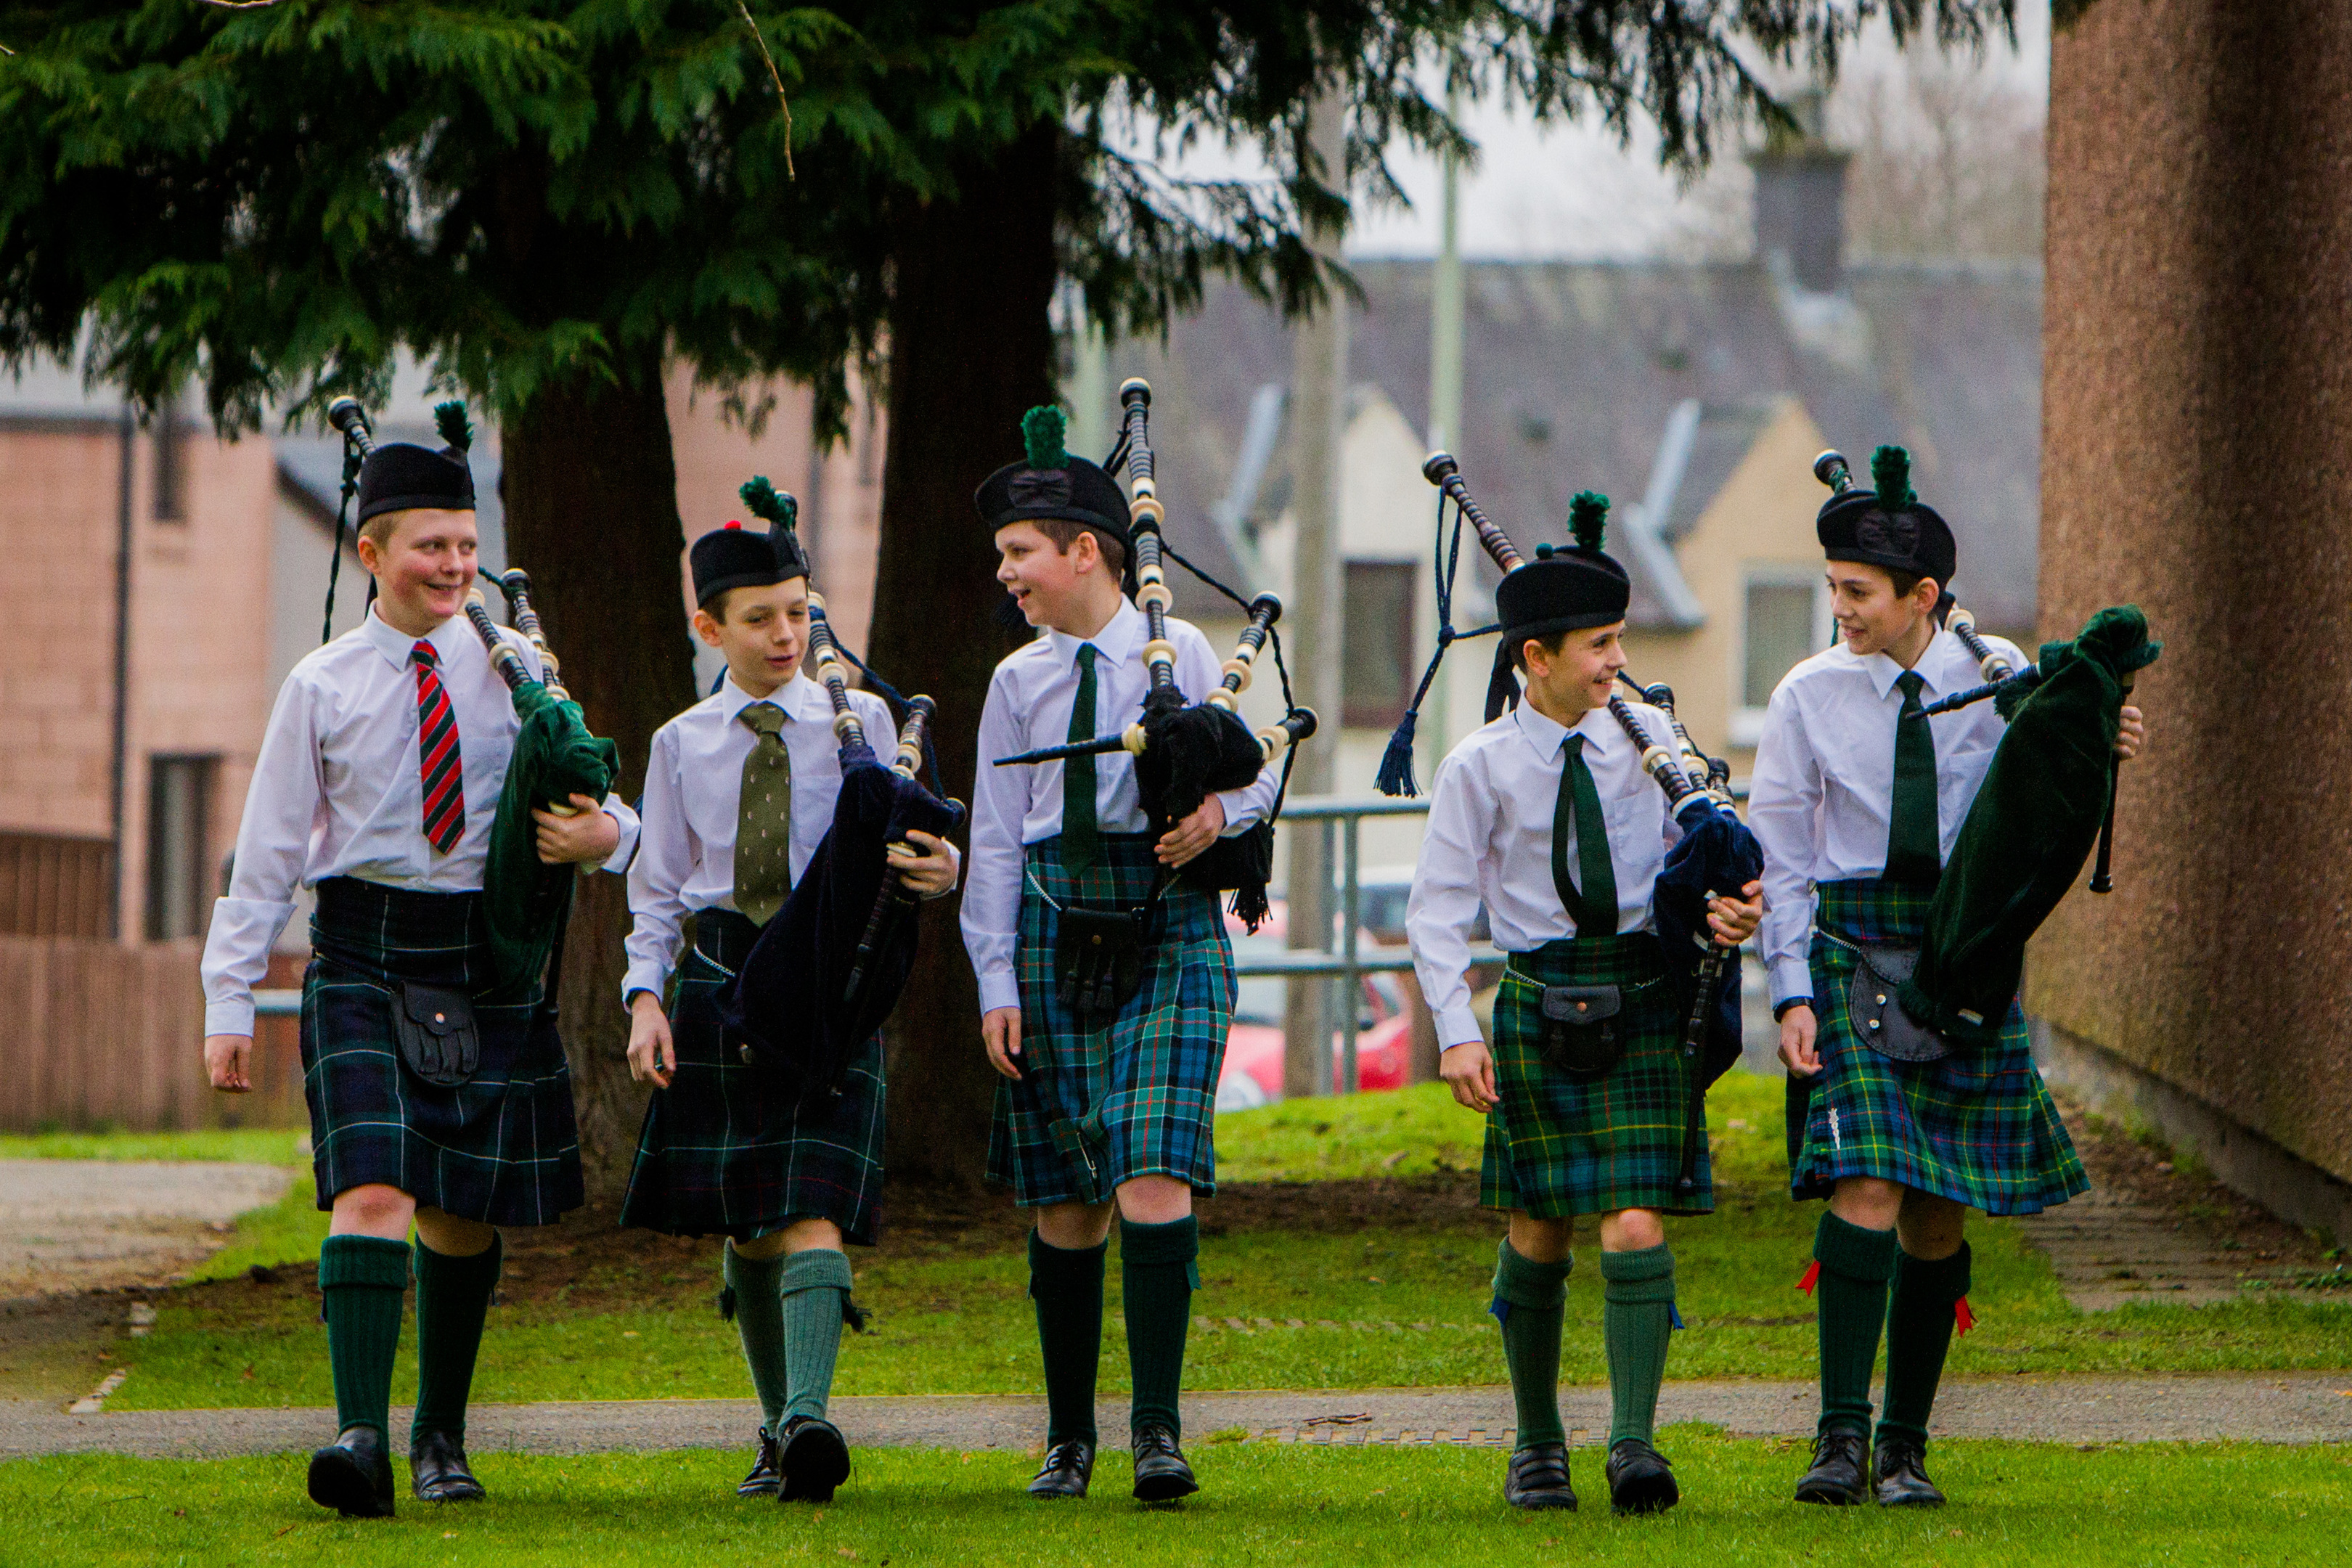 Members of Ardvreck School Pipe Band that attended the event. Left to right are Hamish Landale, Harris Pagett, Roddy Kilpatrick, Cosmo Garrett-Cox and Will Farquharson.